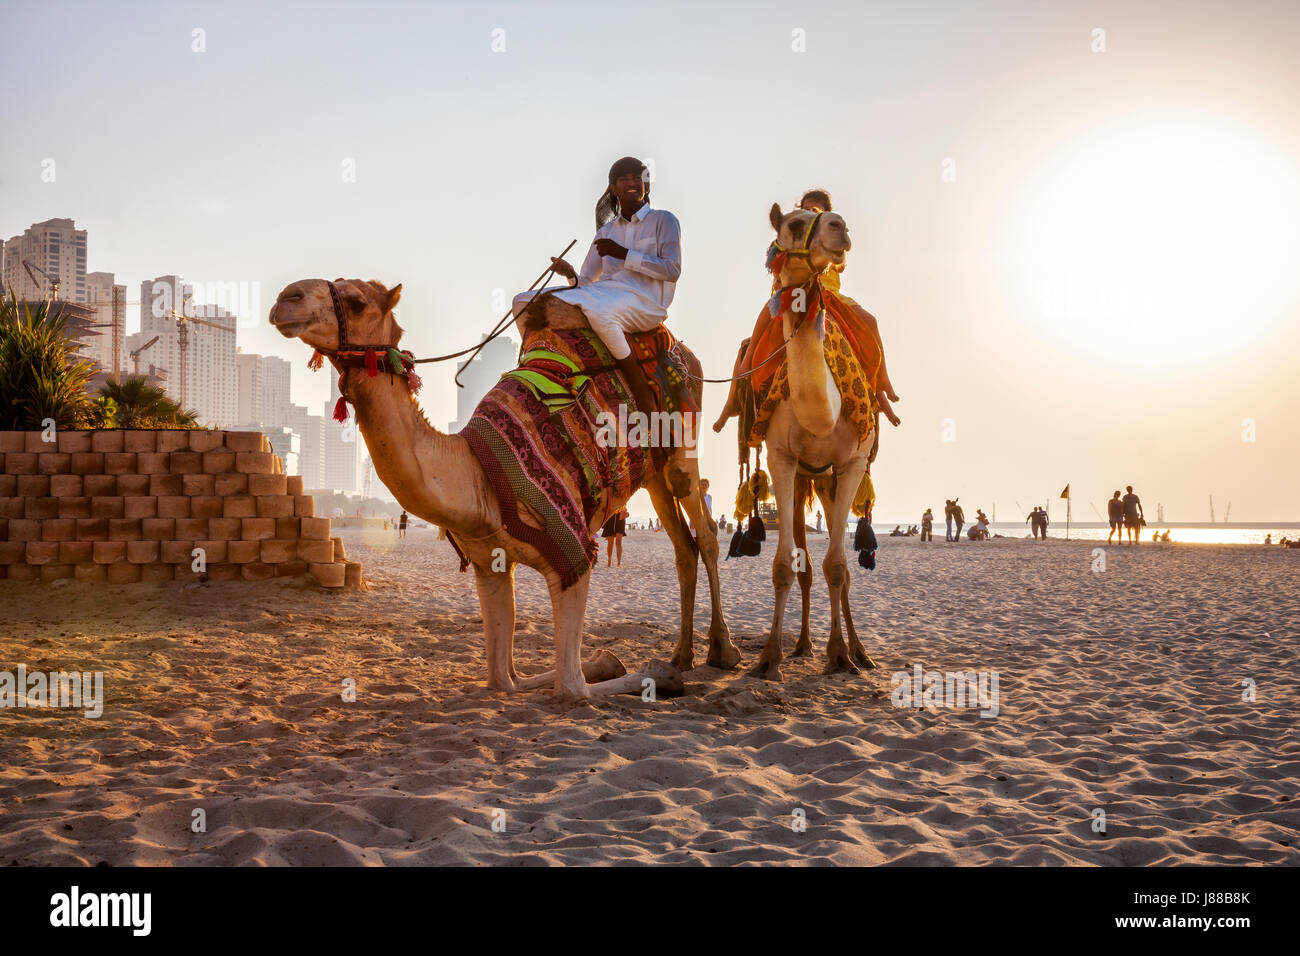 Camel with tourists on the JBR beach at sunset in Dubai - Stock Image